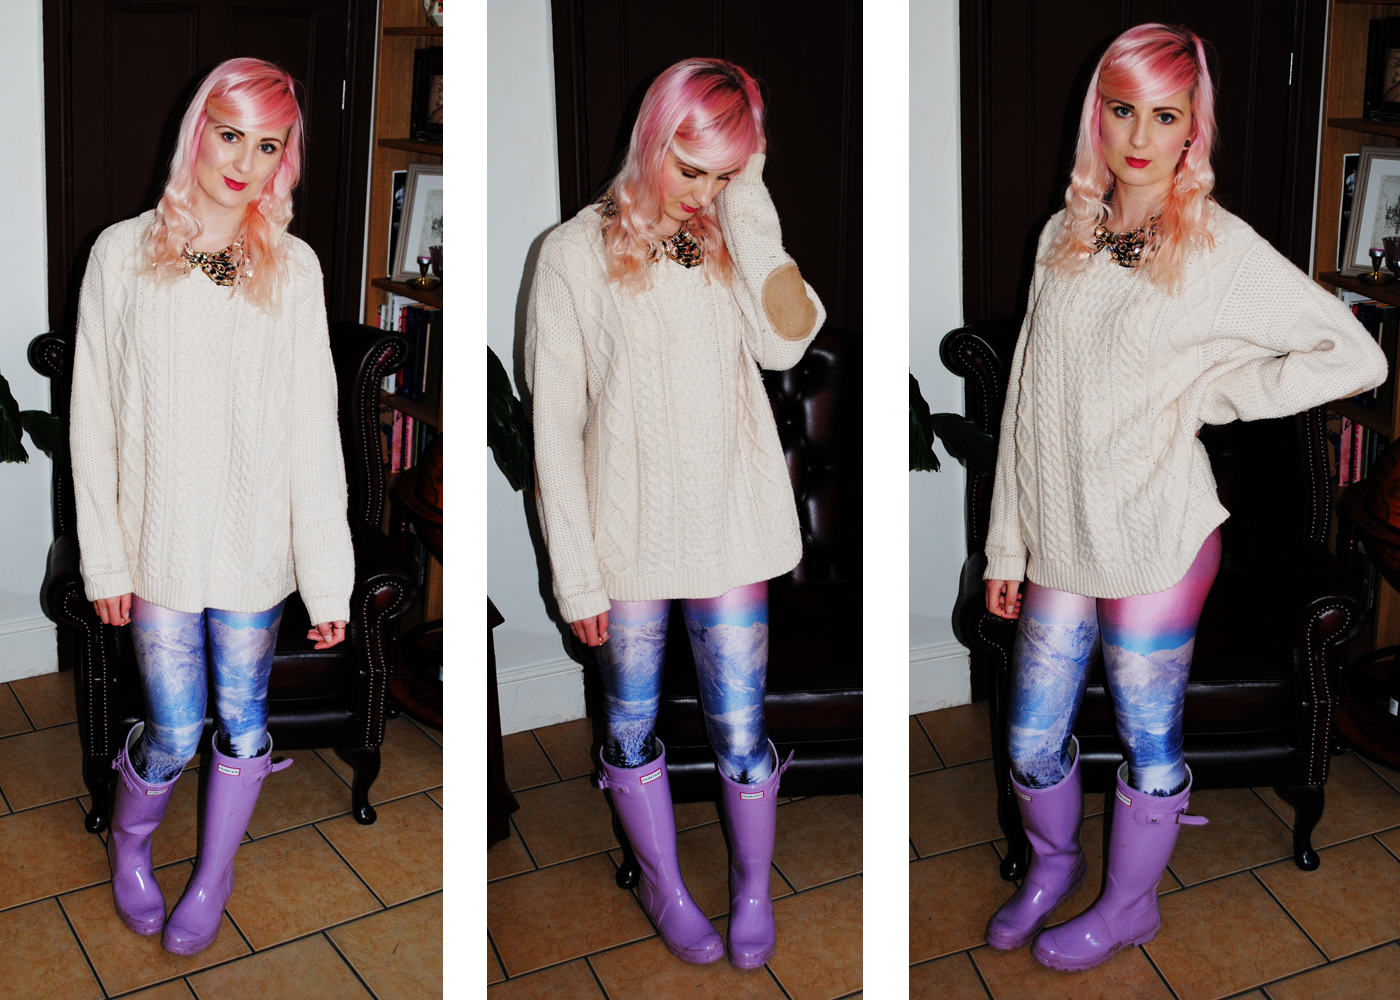 Watch How to Wear Wellies video